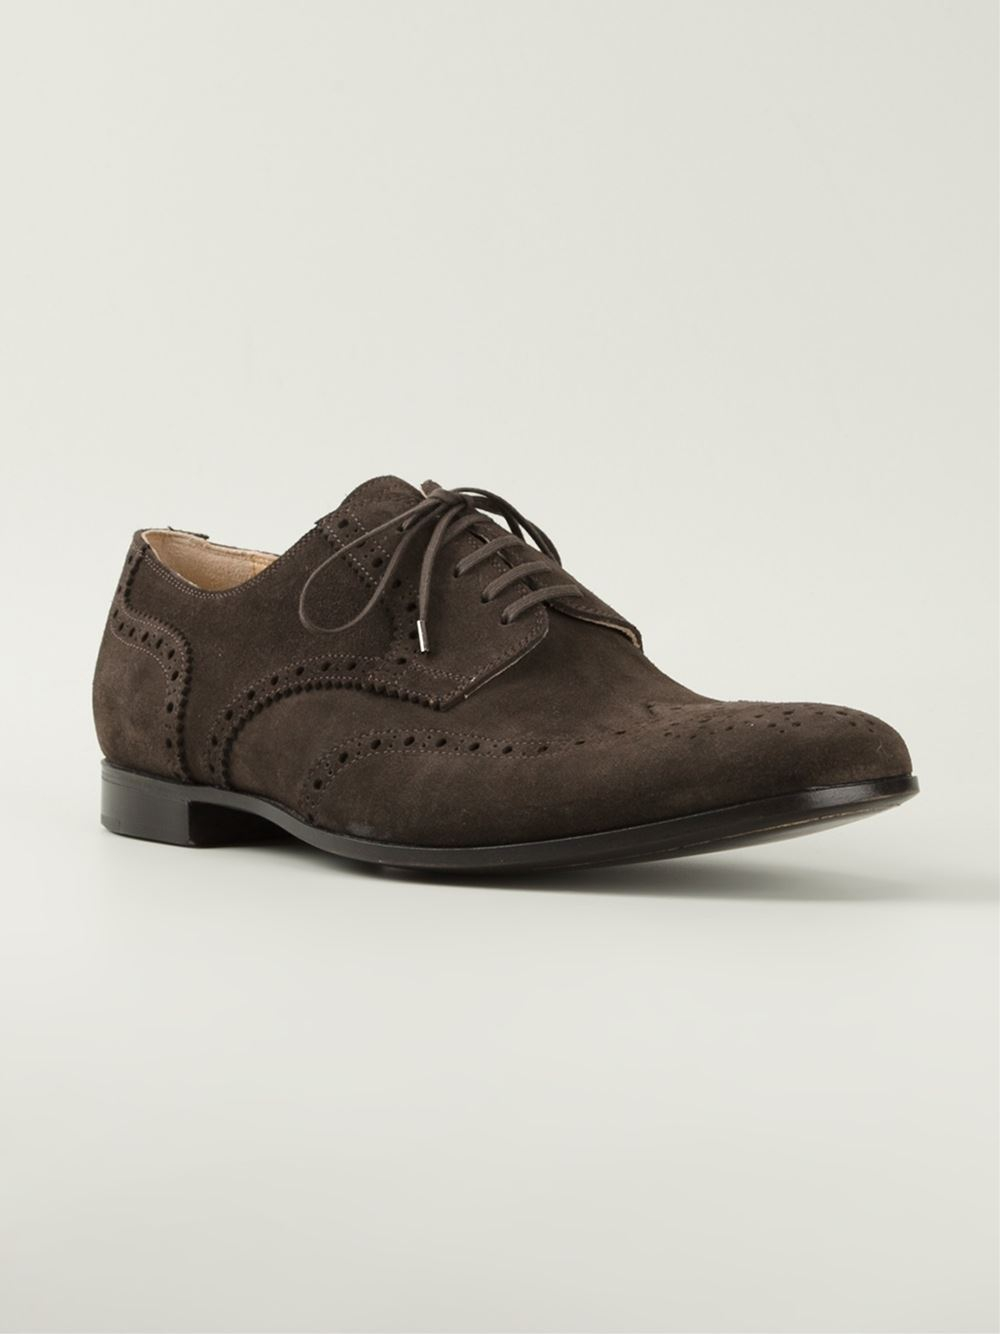 Rocco P Classic Brogue Shoes In Brown For Men Lyst